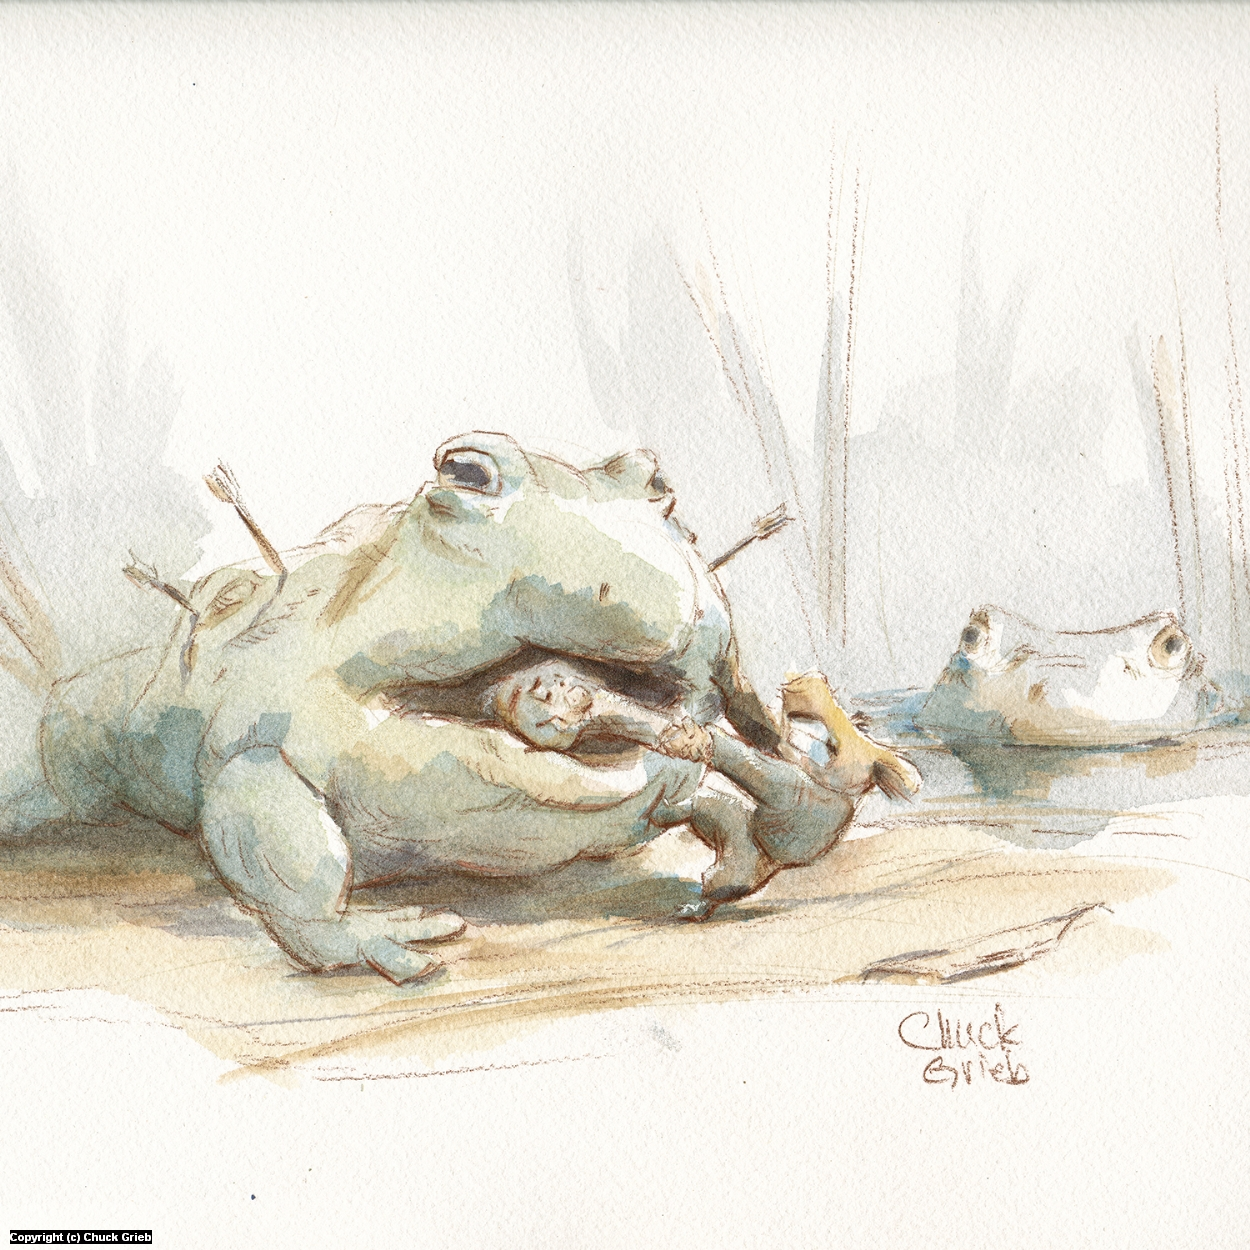 Frog! Artwork by Chuck Grieb